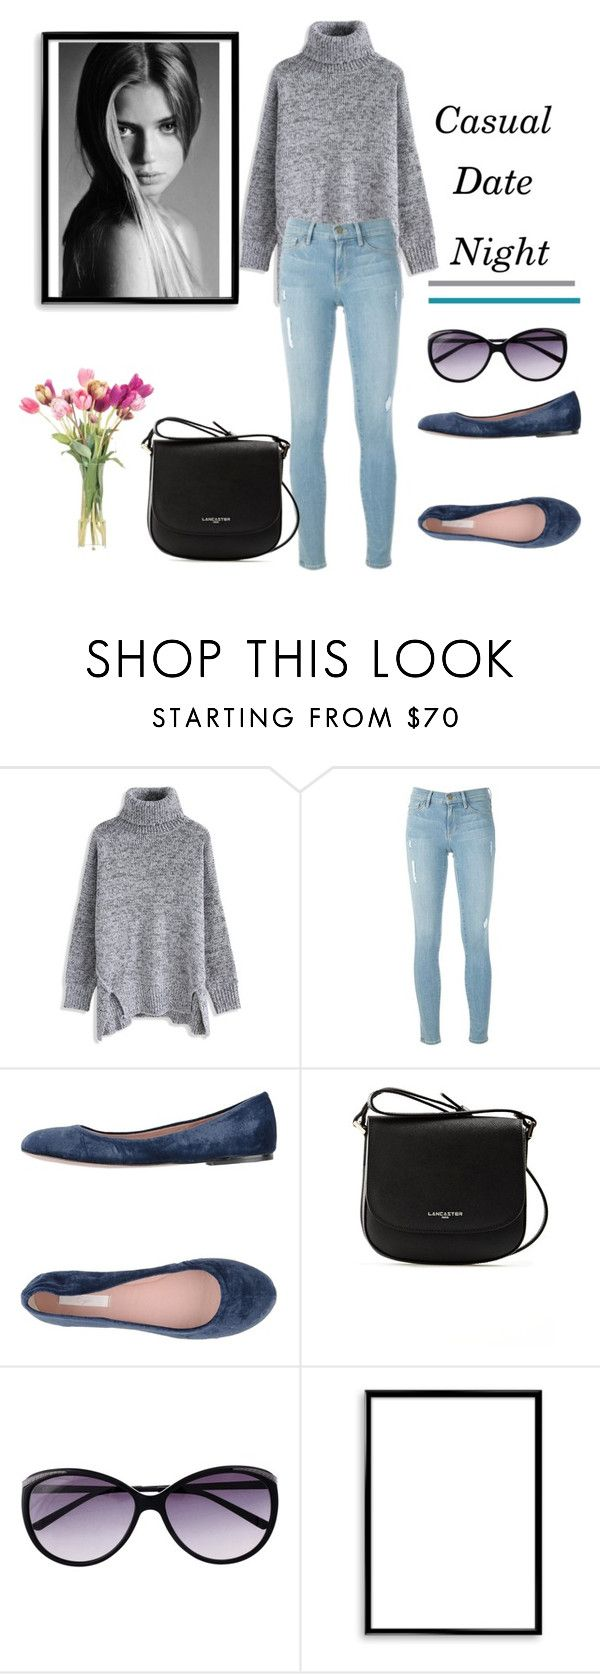 """Casual date night"" by krystalkm-7 ❤ liked on Polyvore featuring Chicwish, Frame, E-Gó, Lancaster, DUO, Bomedo and NDI"